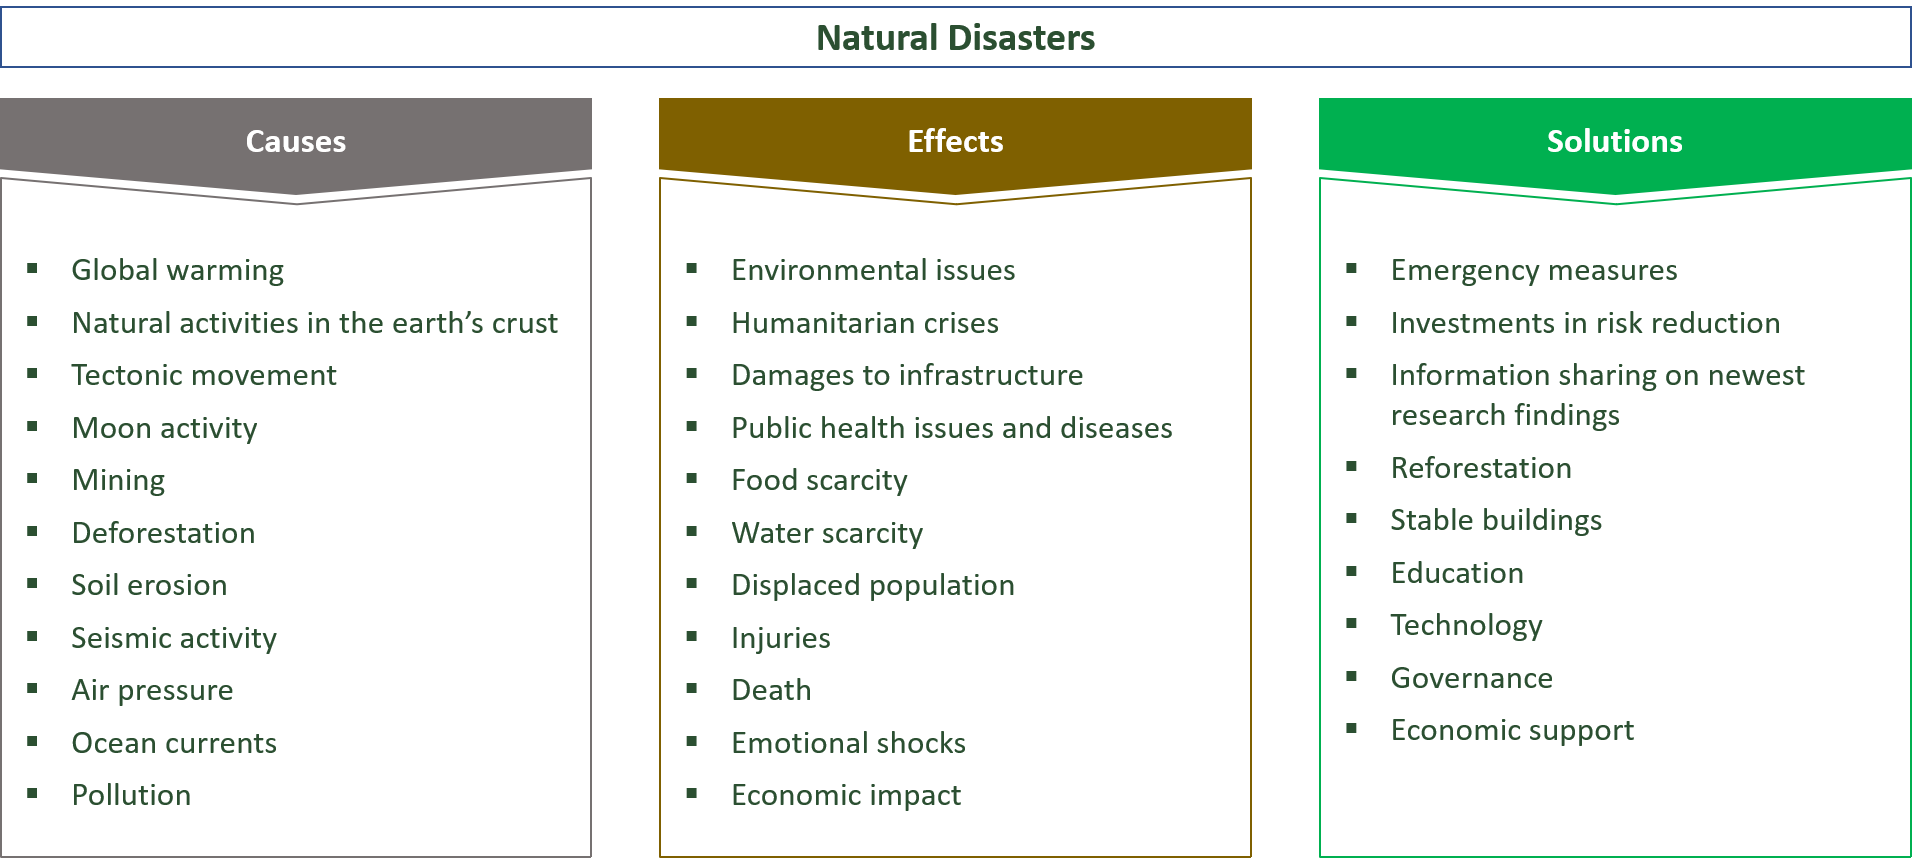 causes, effects and solutions for natural disasters